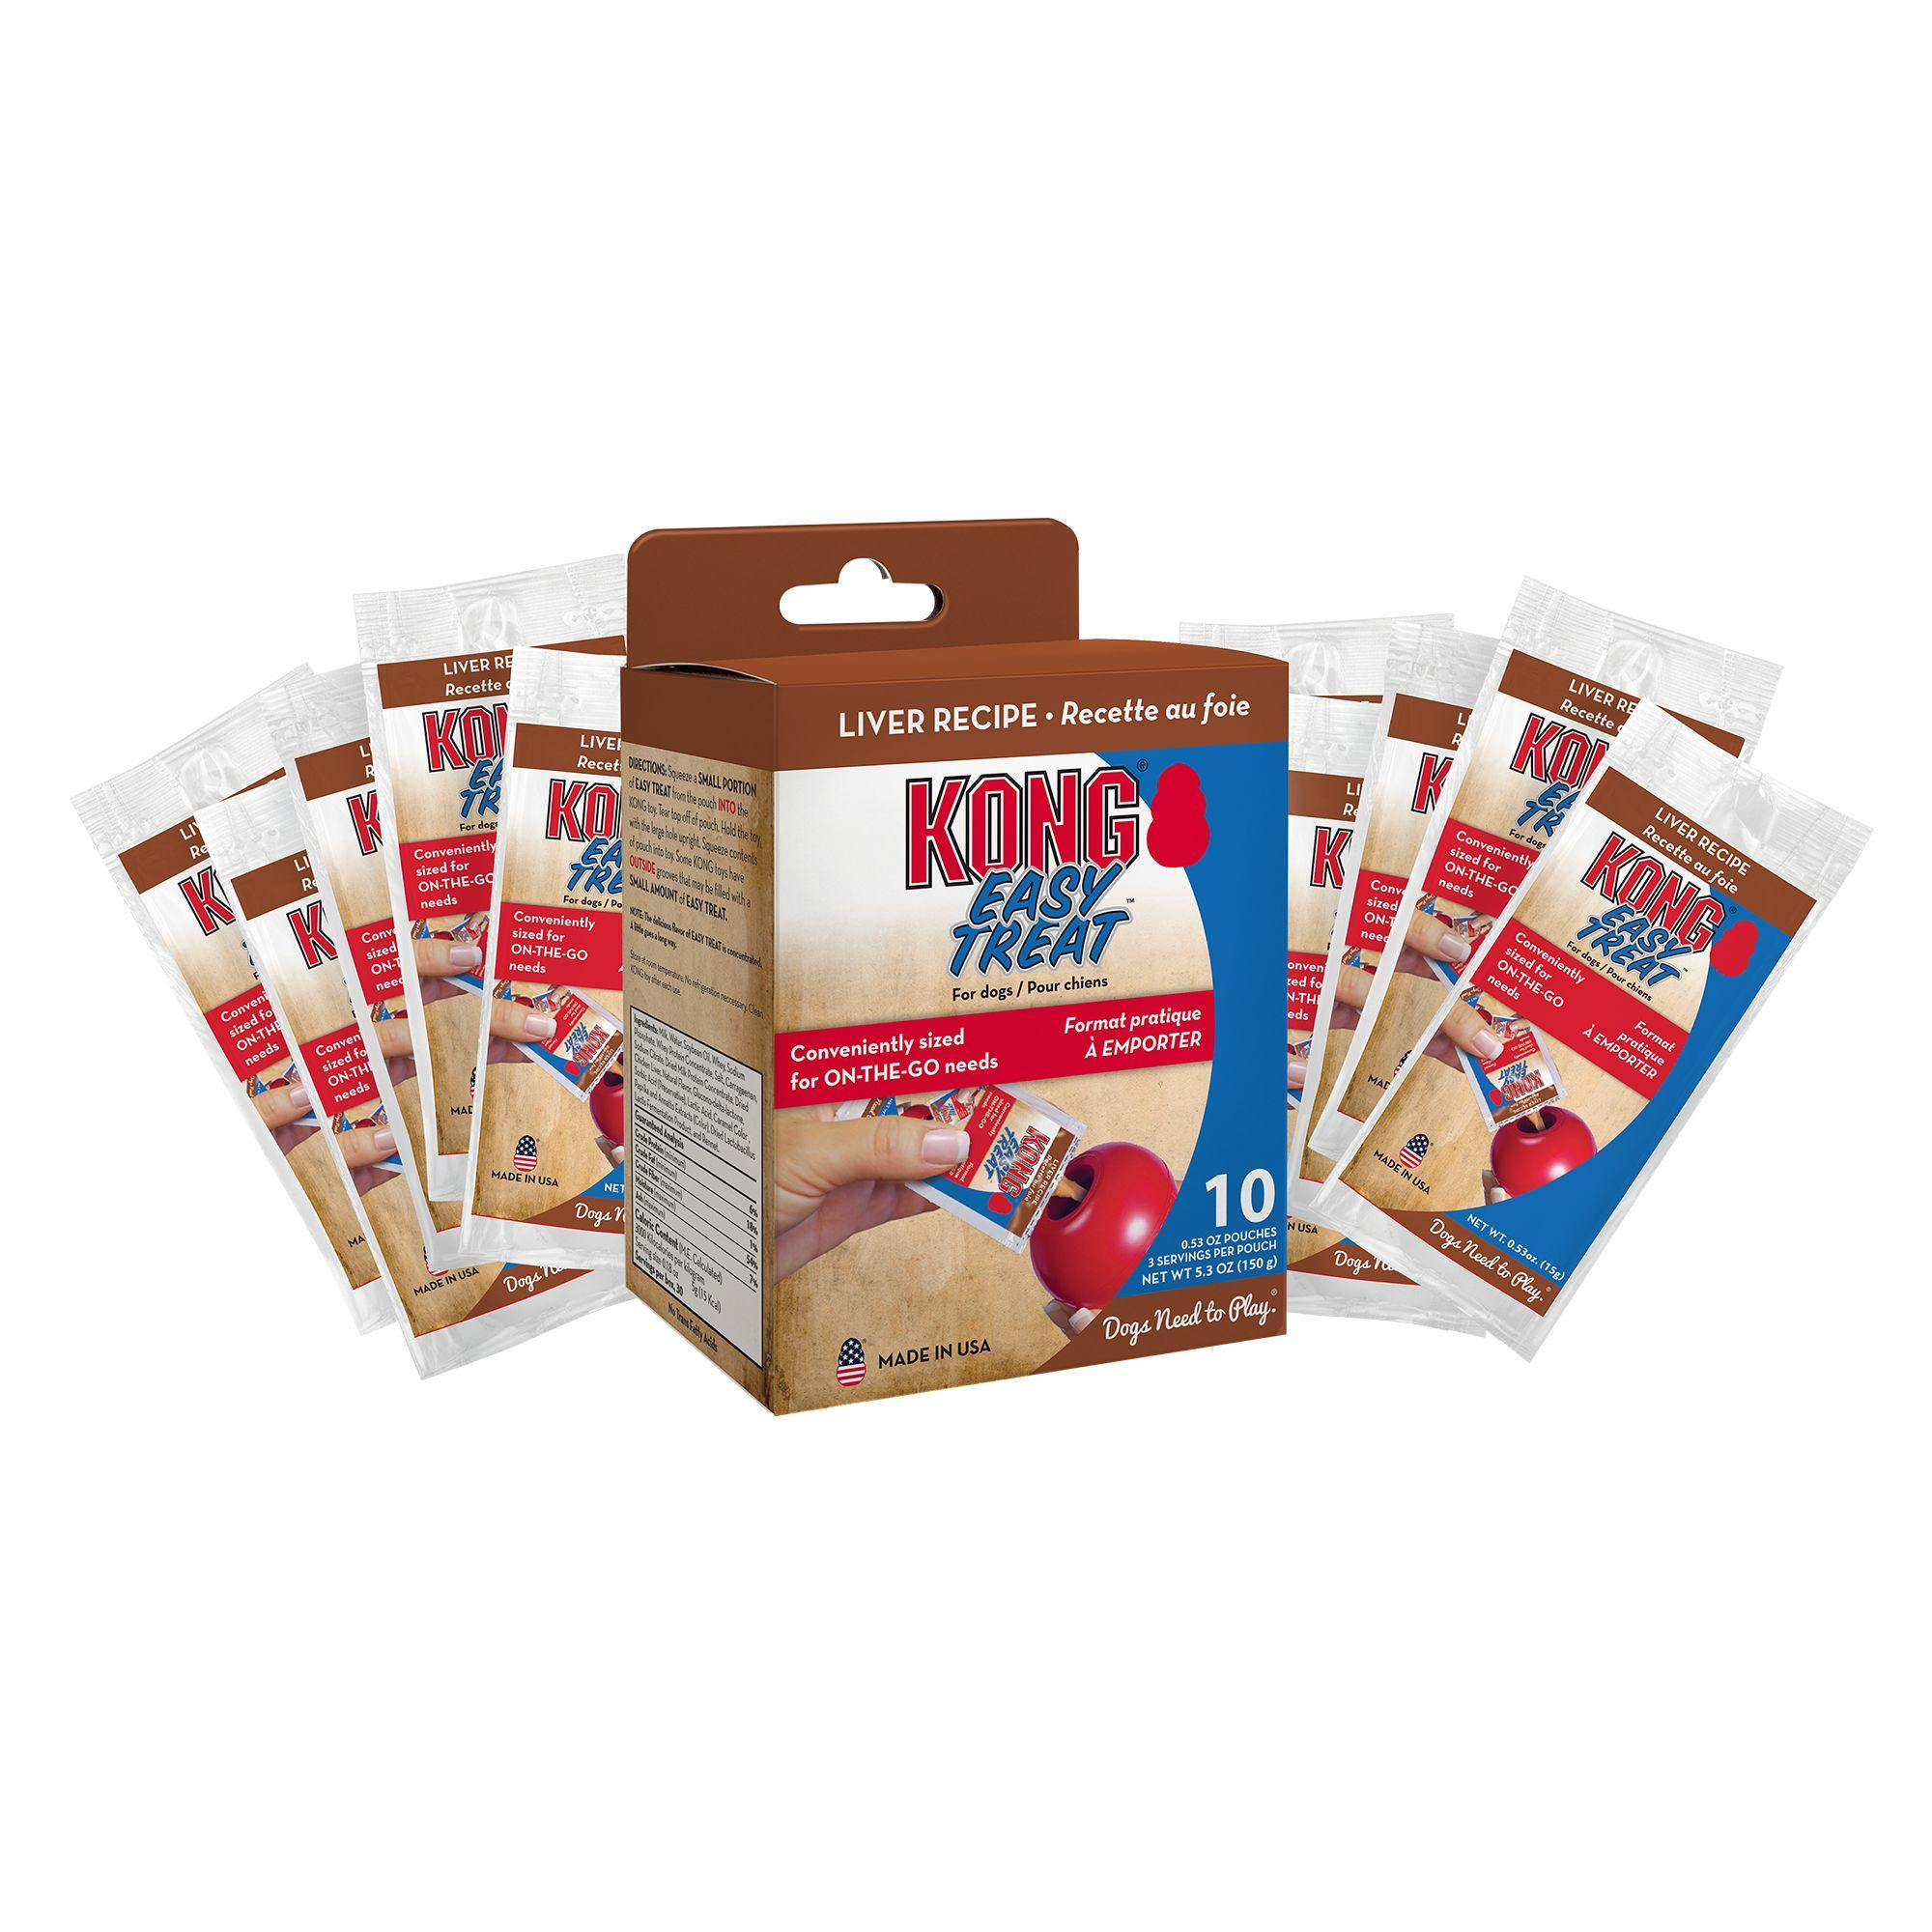 KONG Easy Treat To Go Dog Treat - Liver Flavor